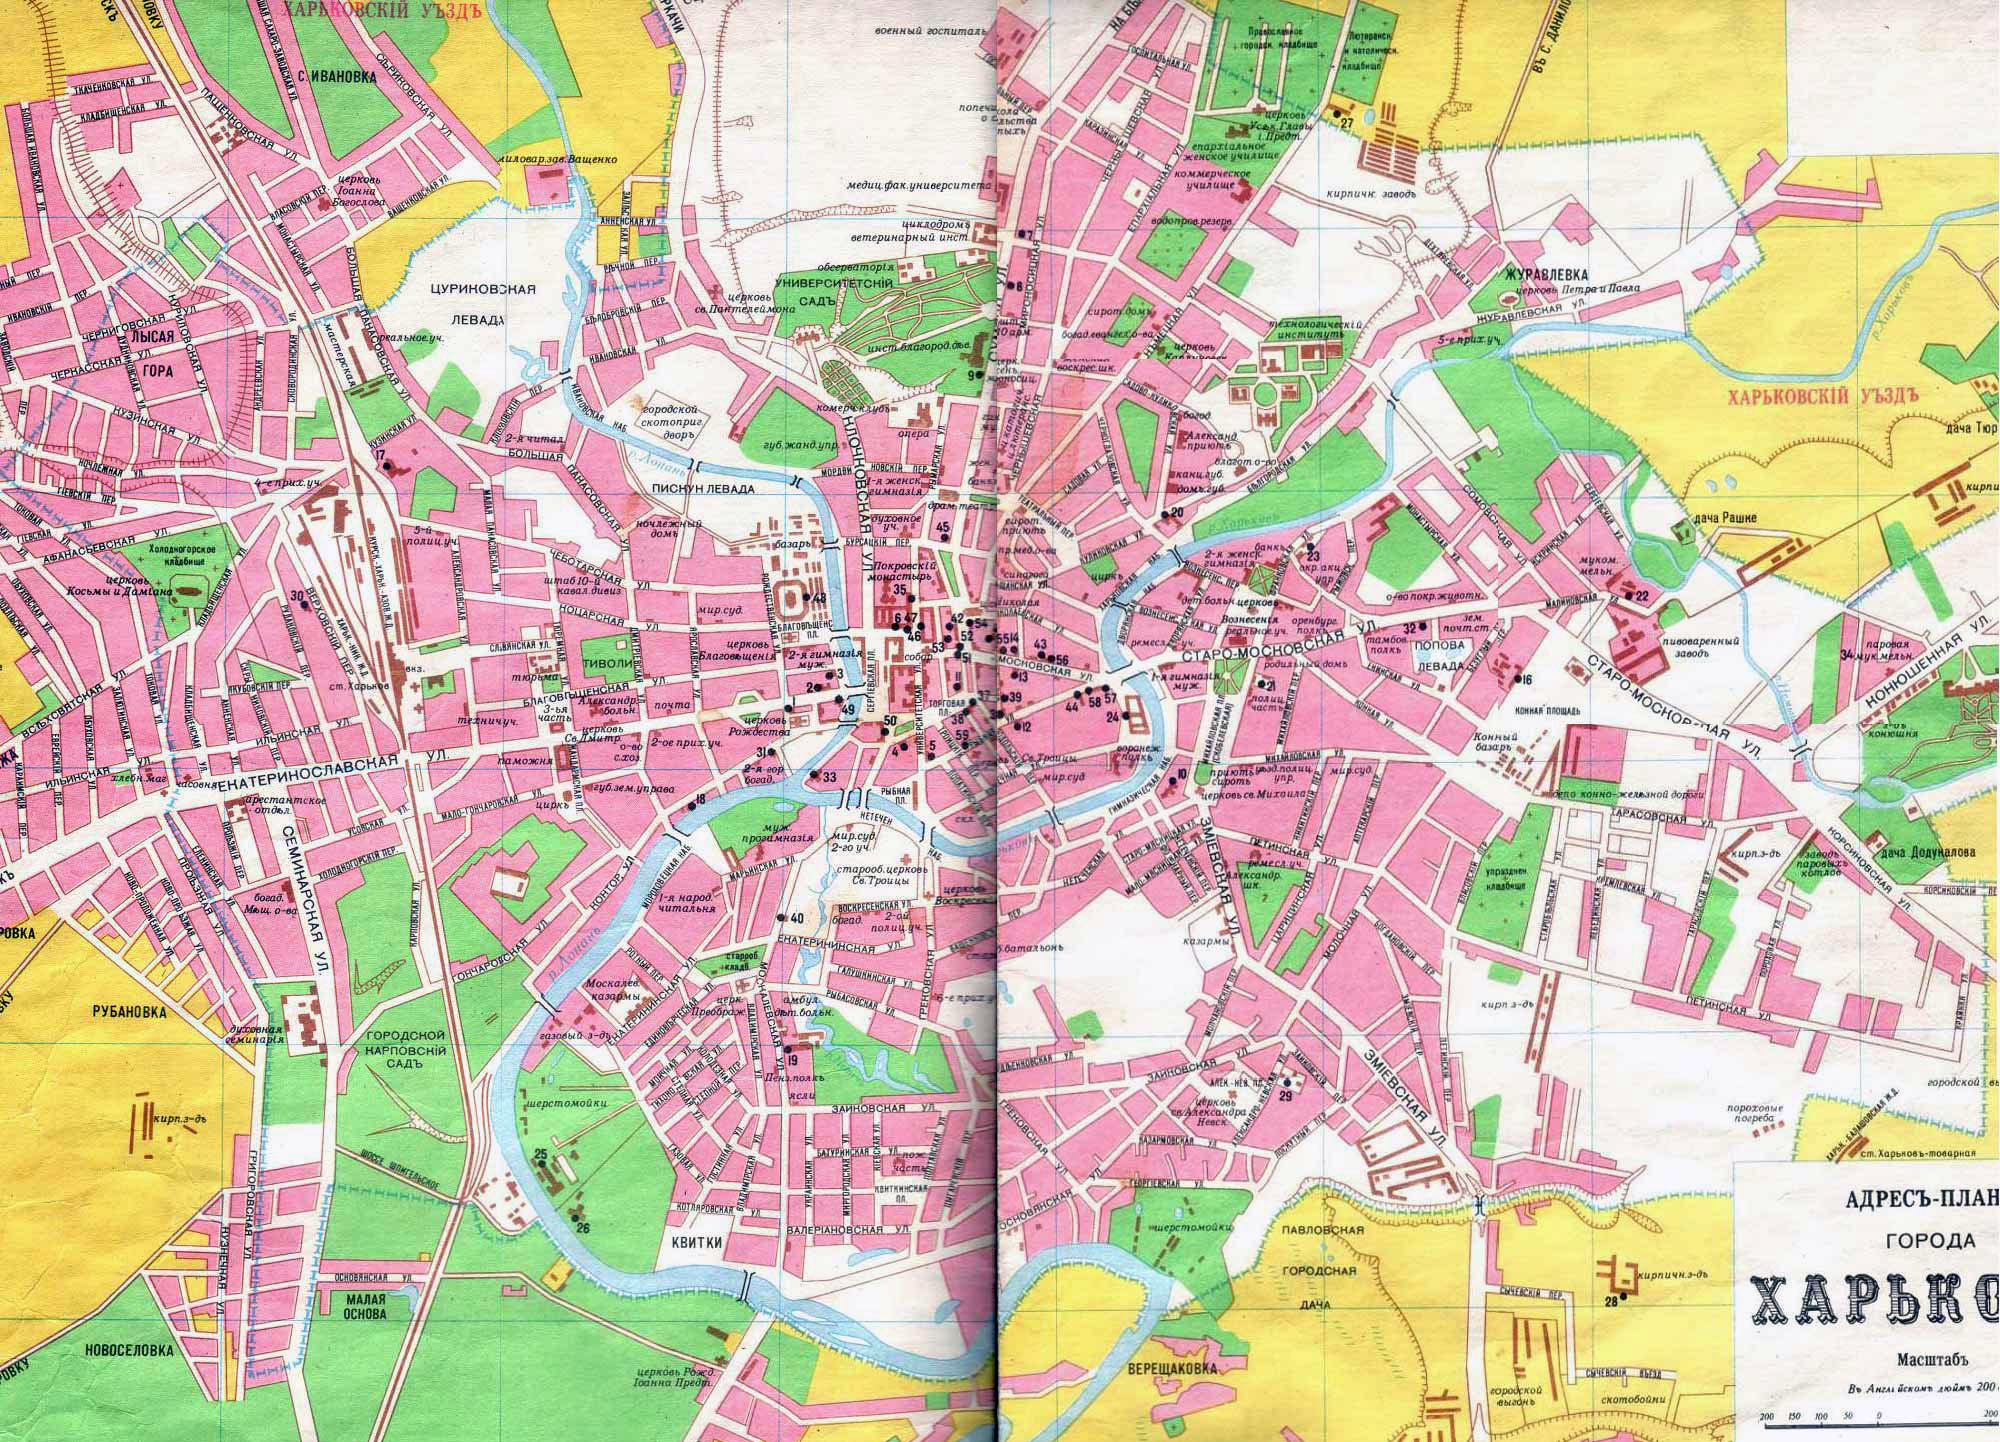 Detailed old map of Kharkov city - 1896 | Kharkov | Ukraine | Europe on tashkent map, chi�in�u, new britain map, kryvyi rih map, gda�sk, odessa map, vinnytsia map, nizhny novgorod, kazan map, sevastopol map, rio de janeiro map, bologna map, baku map, dnieper river, bratislava map, dnipropetrovsk map, oslo map, kiev map, kyiv map, zagreb map, vladivostok map, soviet union map, poznan map, bila tserkva map,